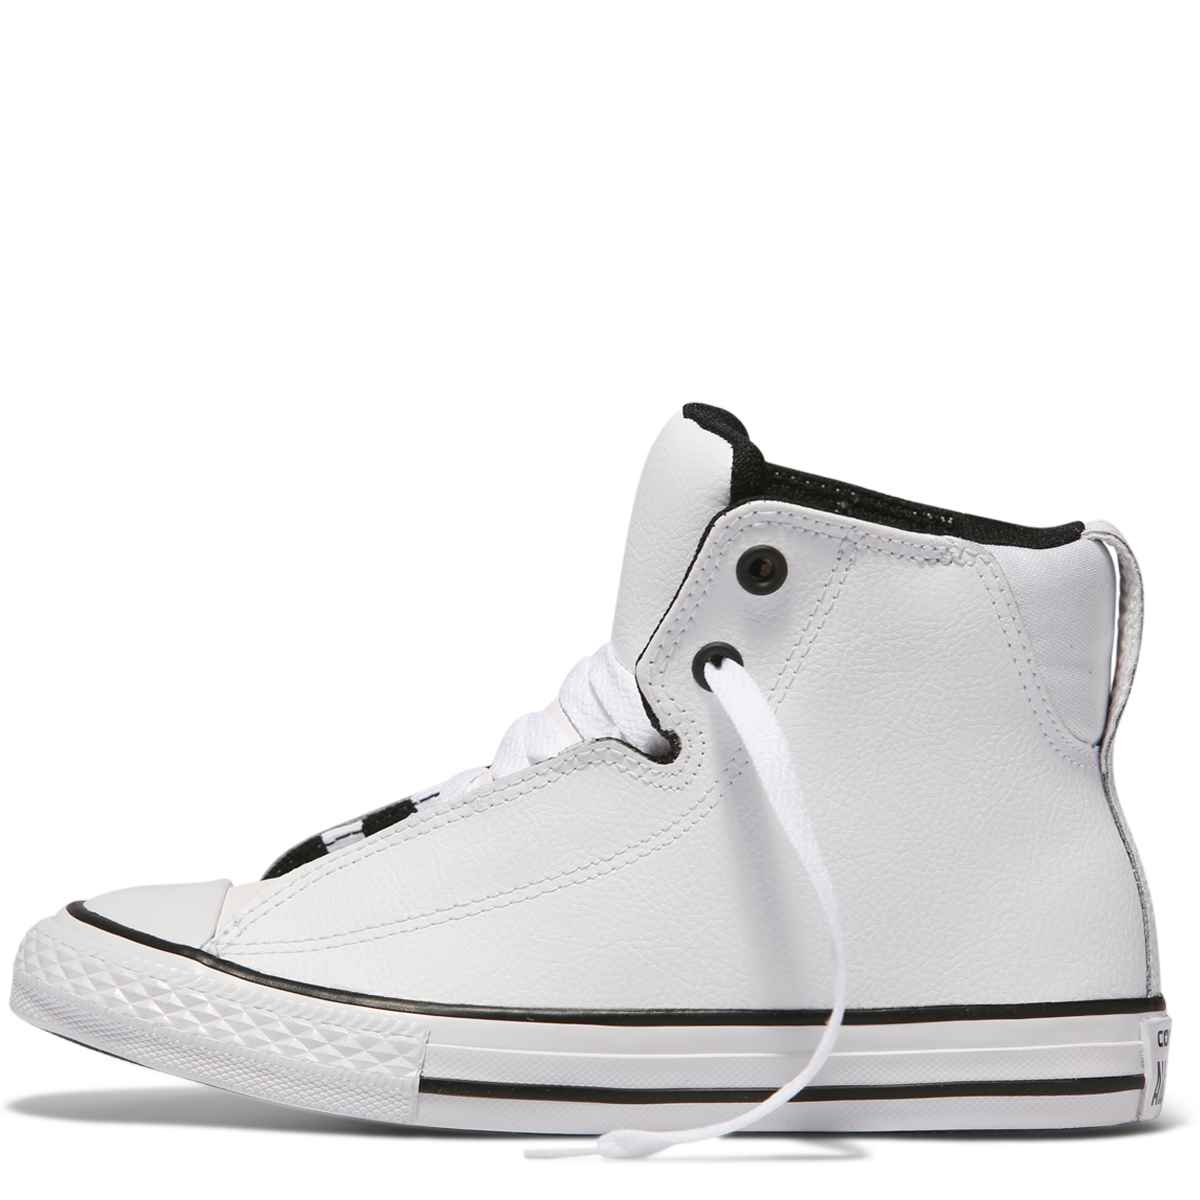 728d02f235f9 ... Chuck Taylor Youth All Star Legit Leather High Top White 655997C Famous  Rock Shop 517 Hunter ...